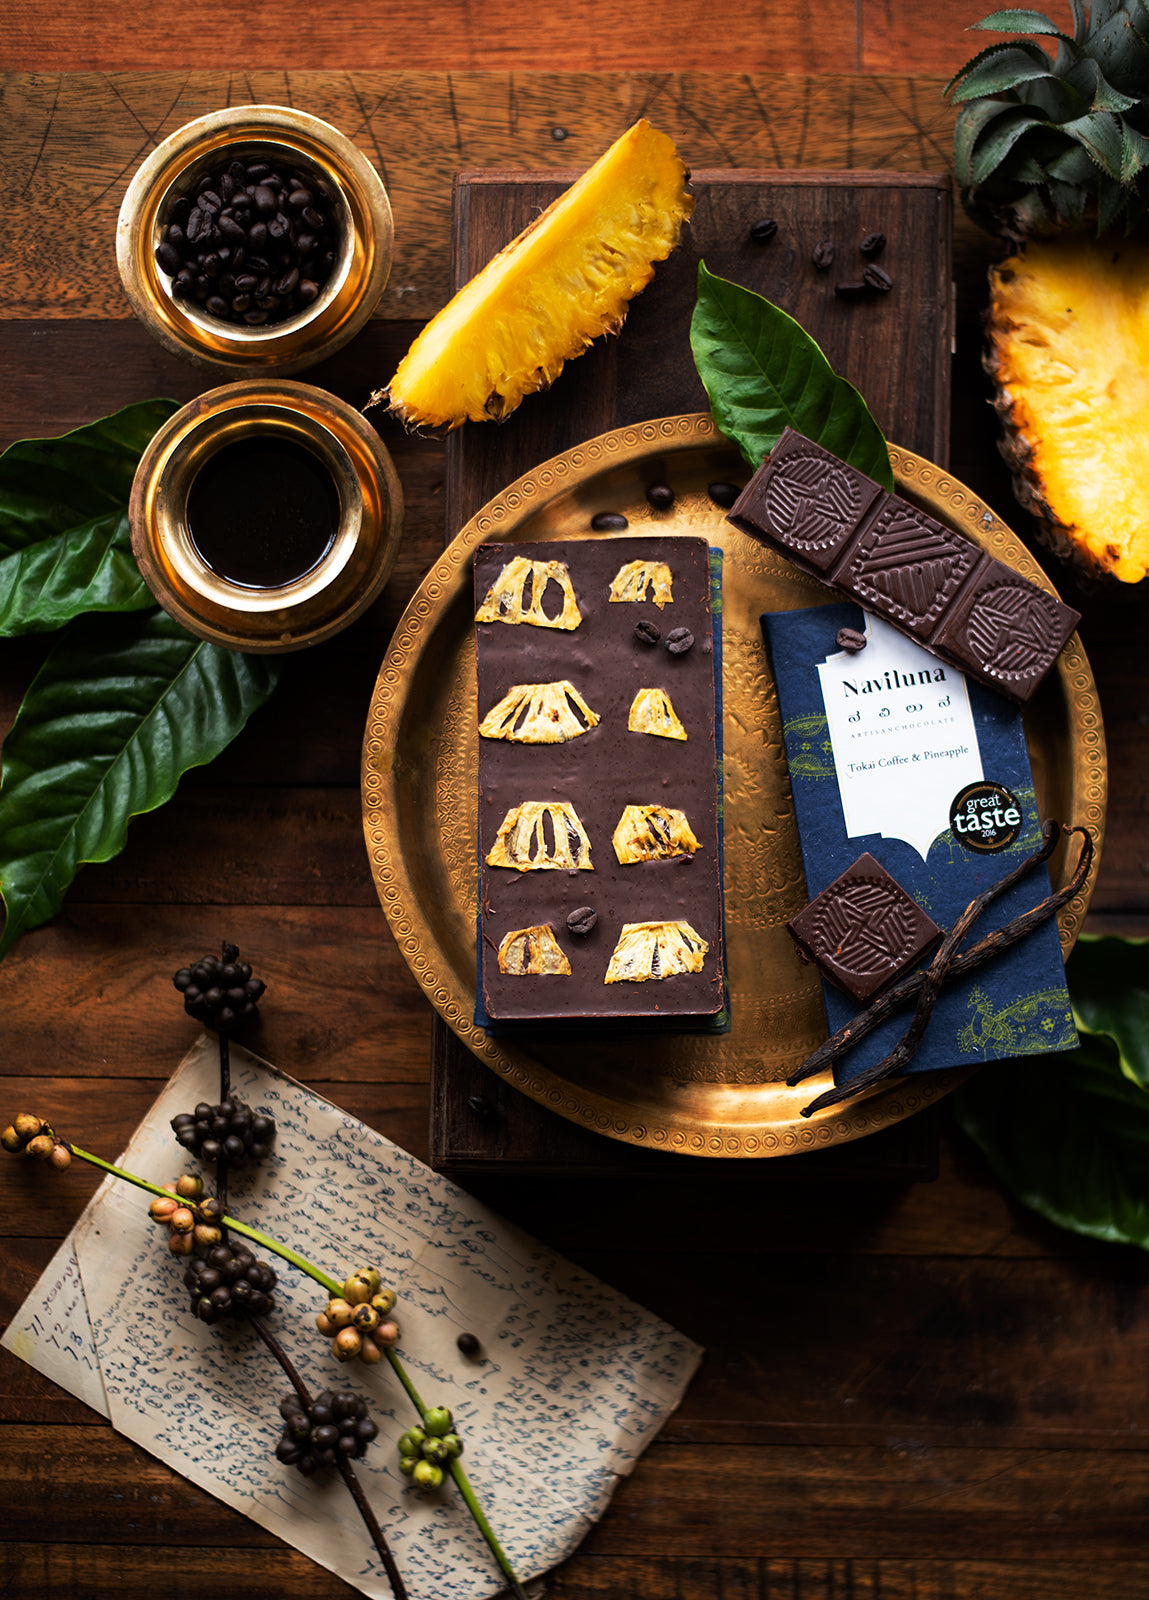 vegan craft inclusion chocolates with organic ingredients, bean to bar made in small batched